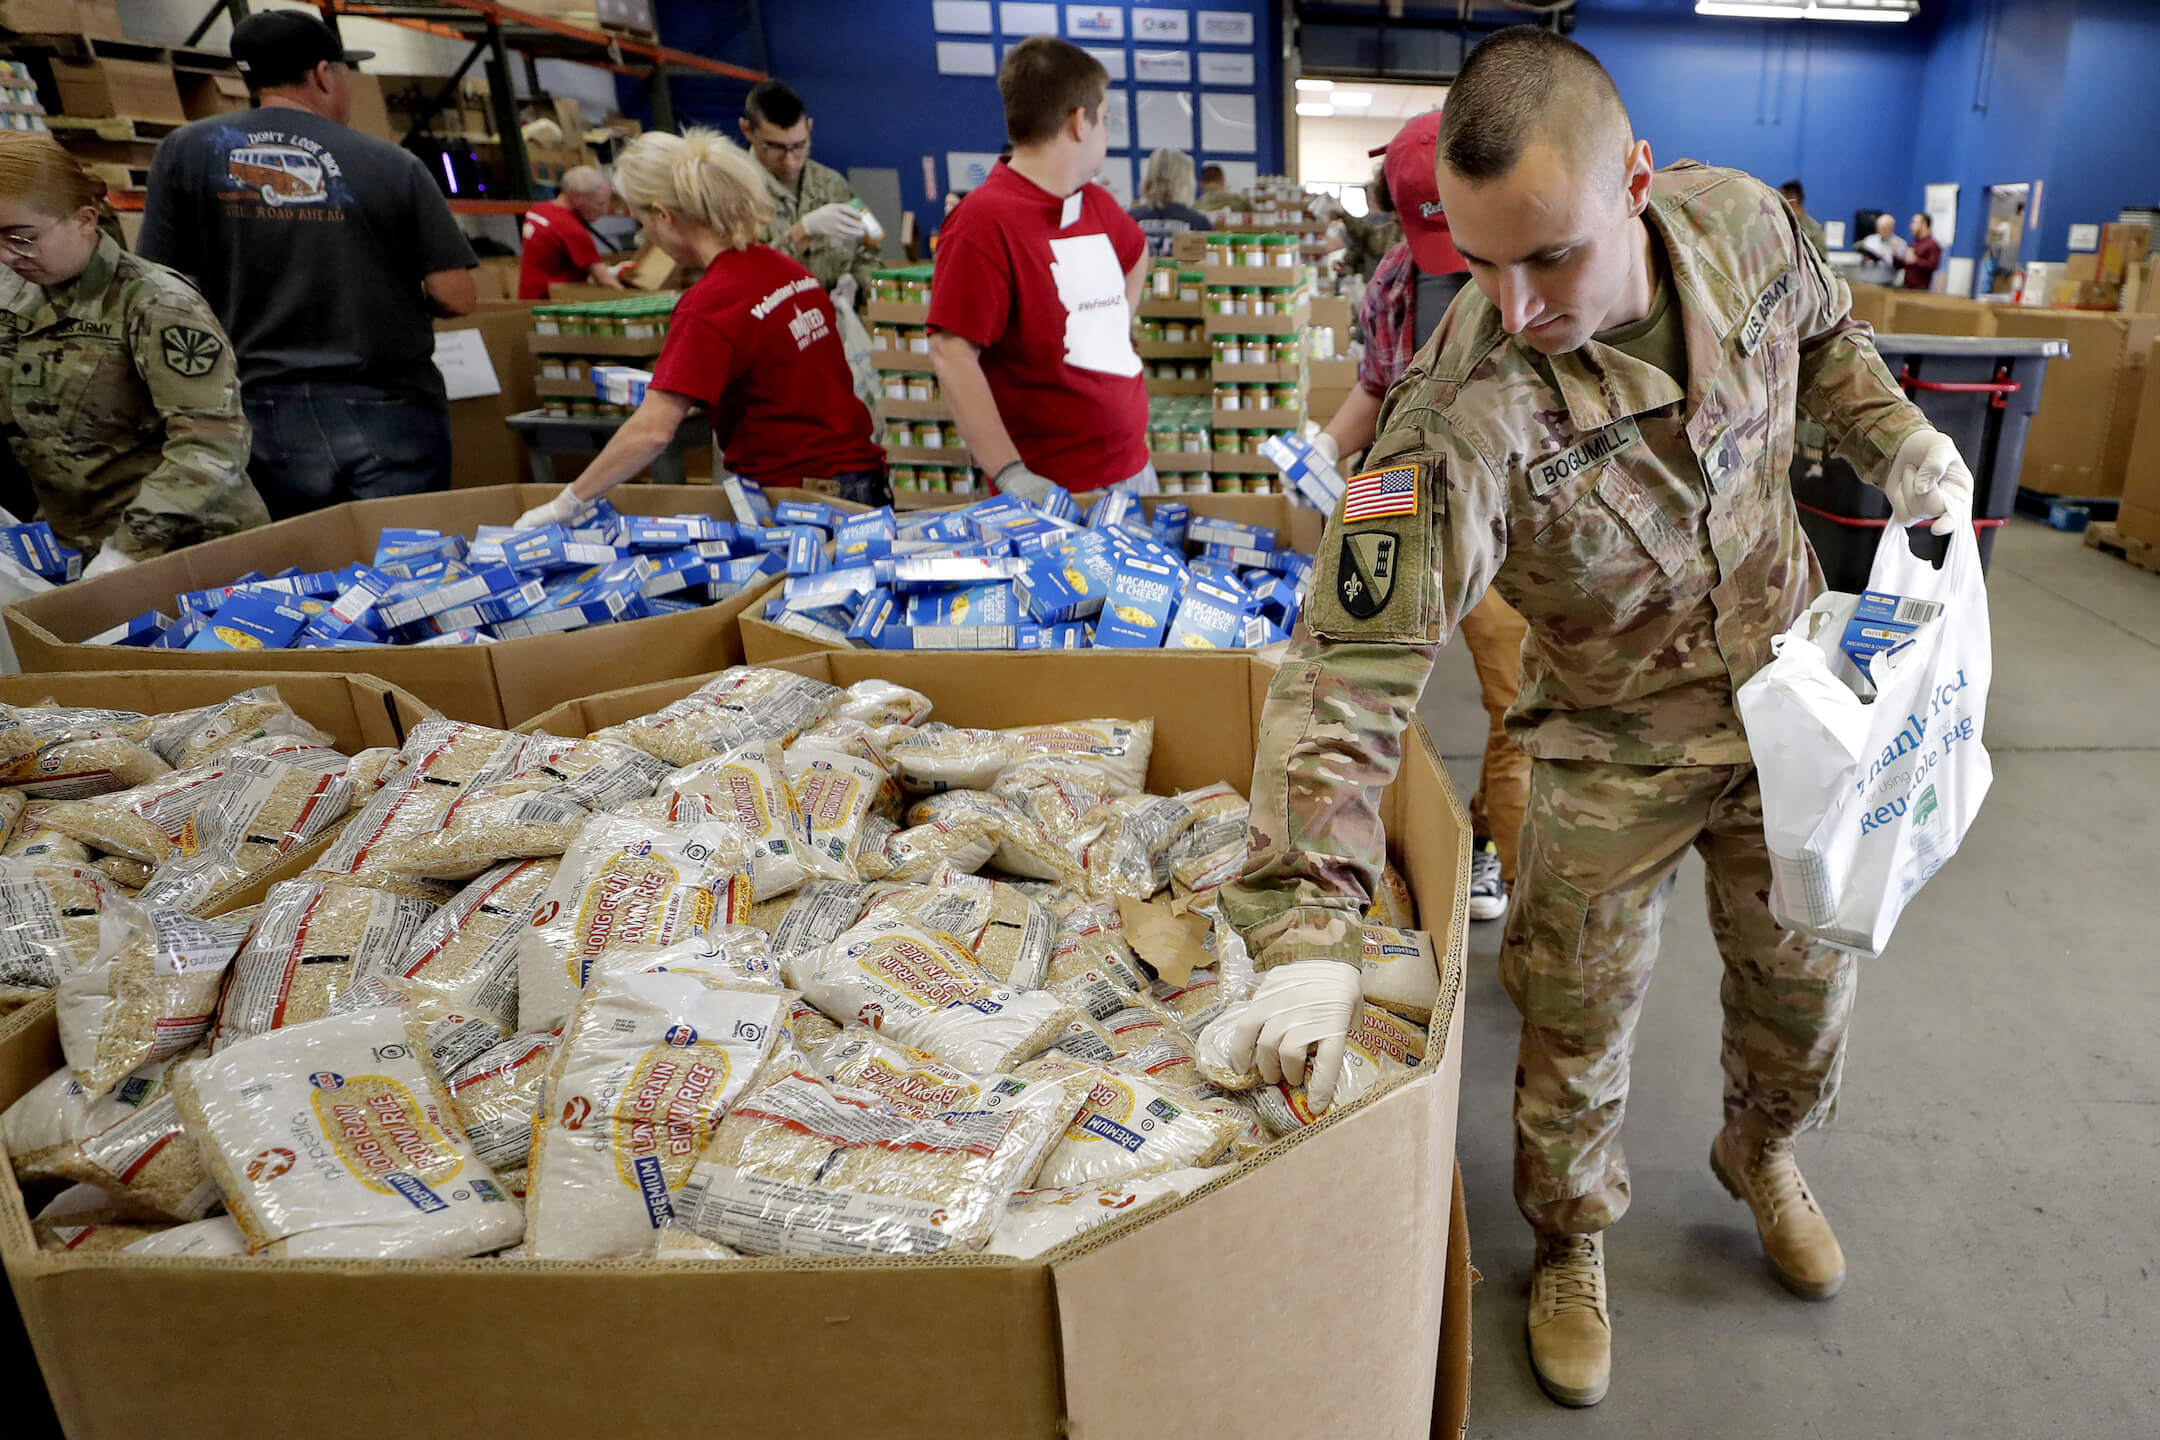 Members of the Arizona National Guard pack and sort food items at a food bank Thursday, March 26, 2020, in Mesa, Ariz.